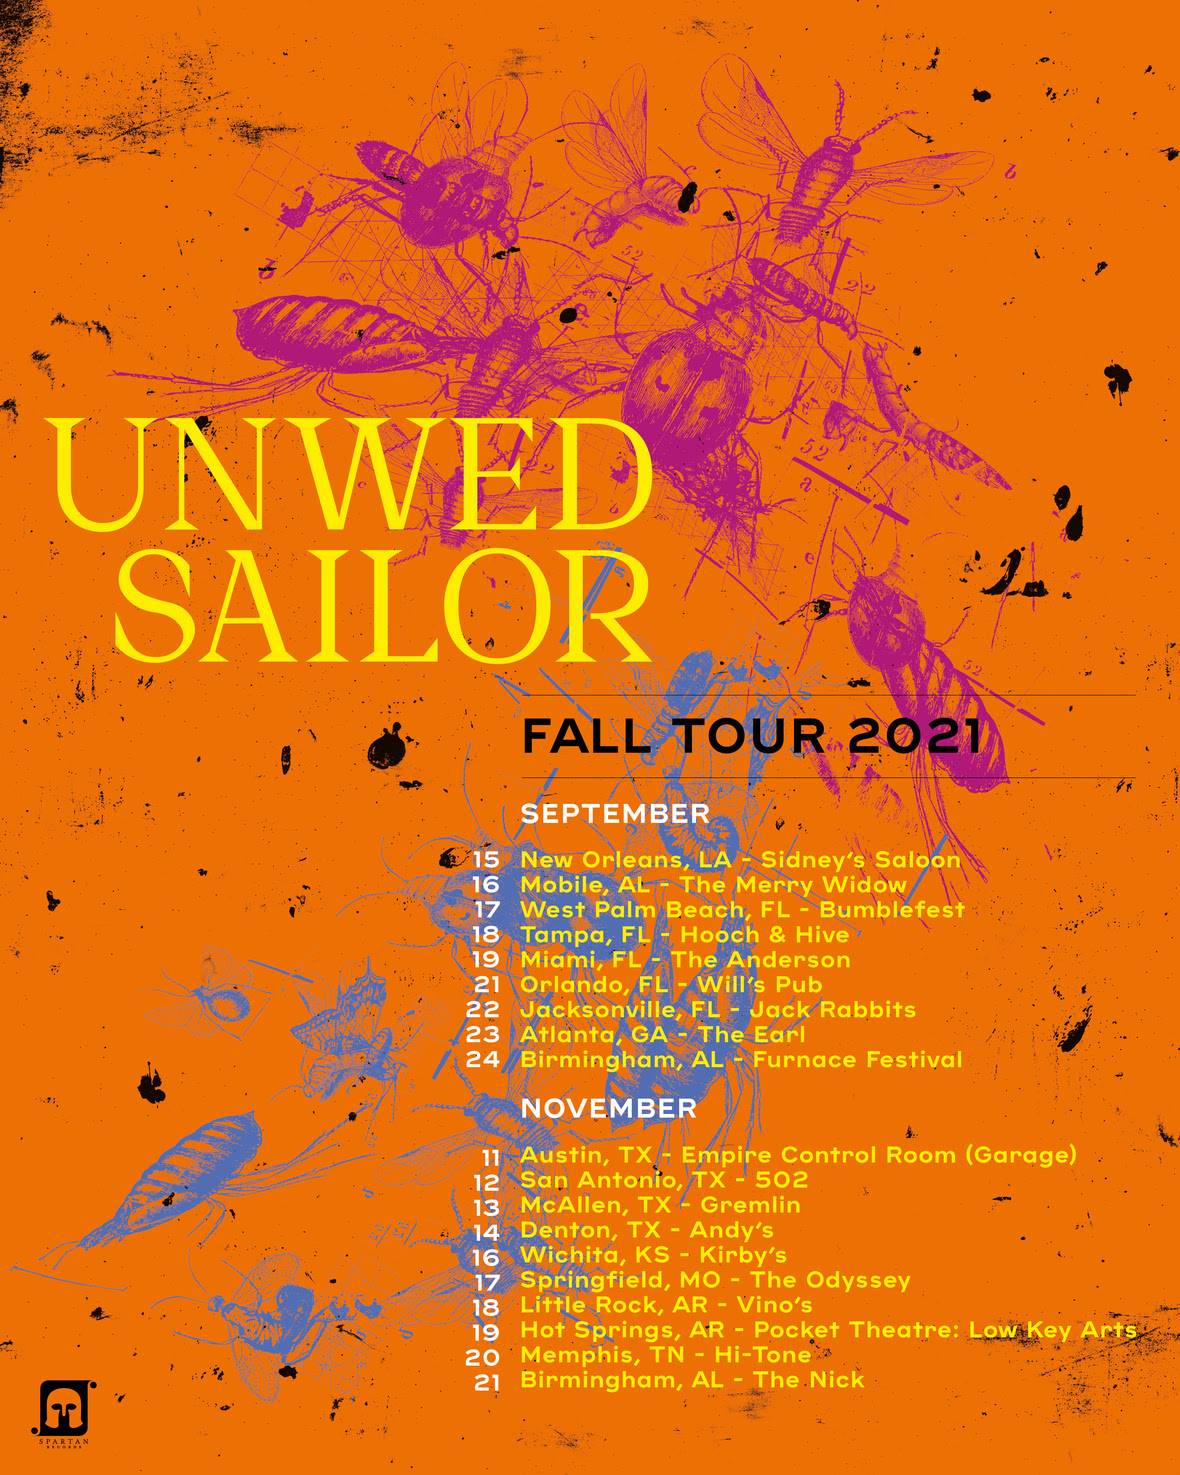 Fall Tour 2021 with Dates